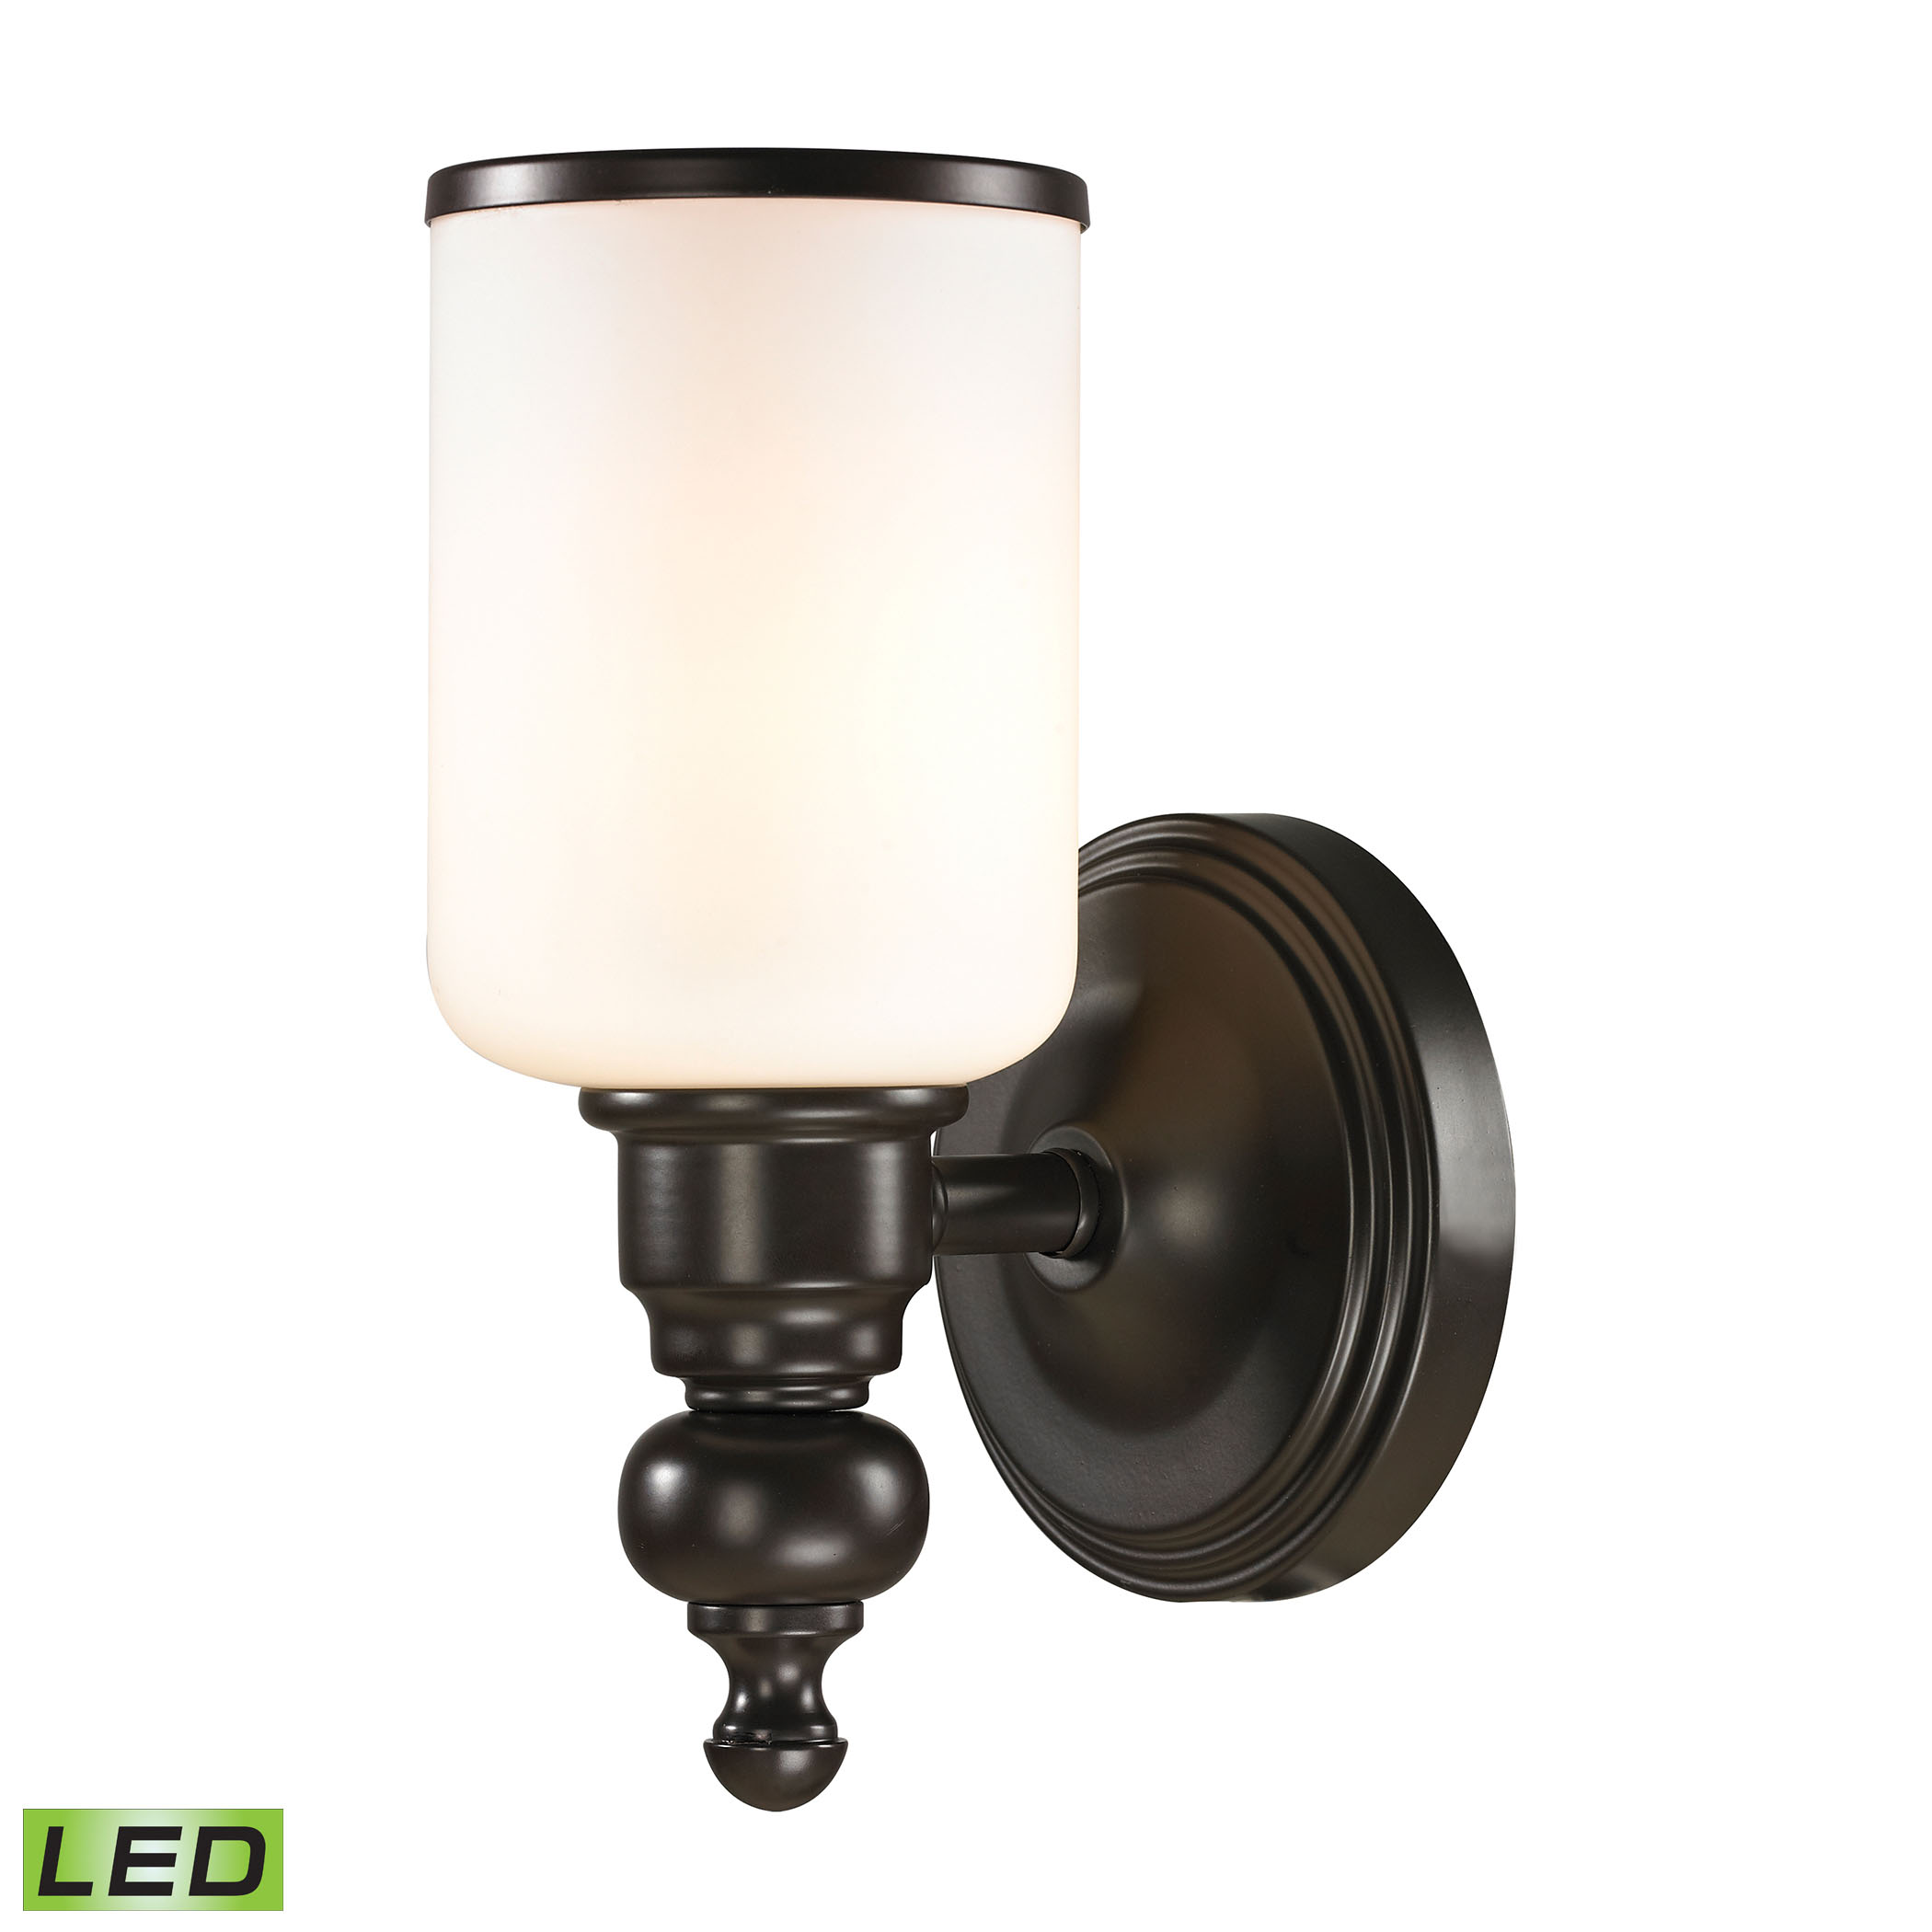 Bristol Collection 1 light bath in Oil Rubbed Bronze - LED Offering Up To 800 Lumens (60 Watt Equivalent)